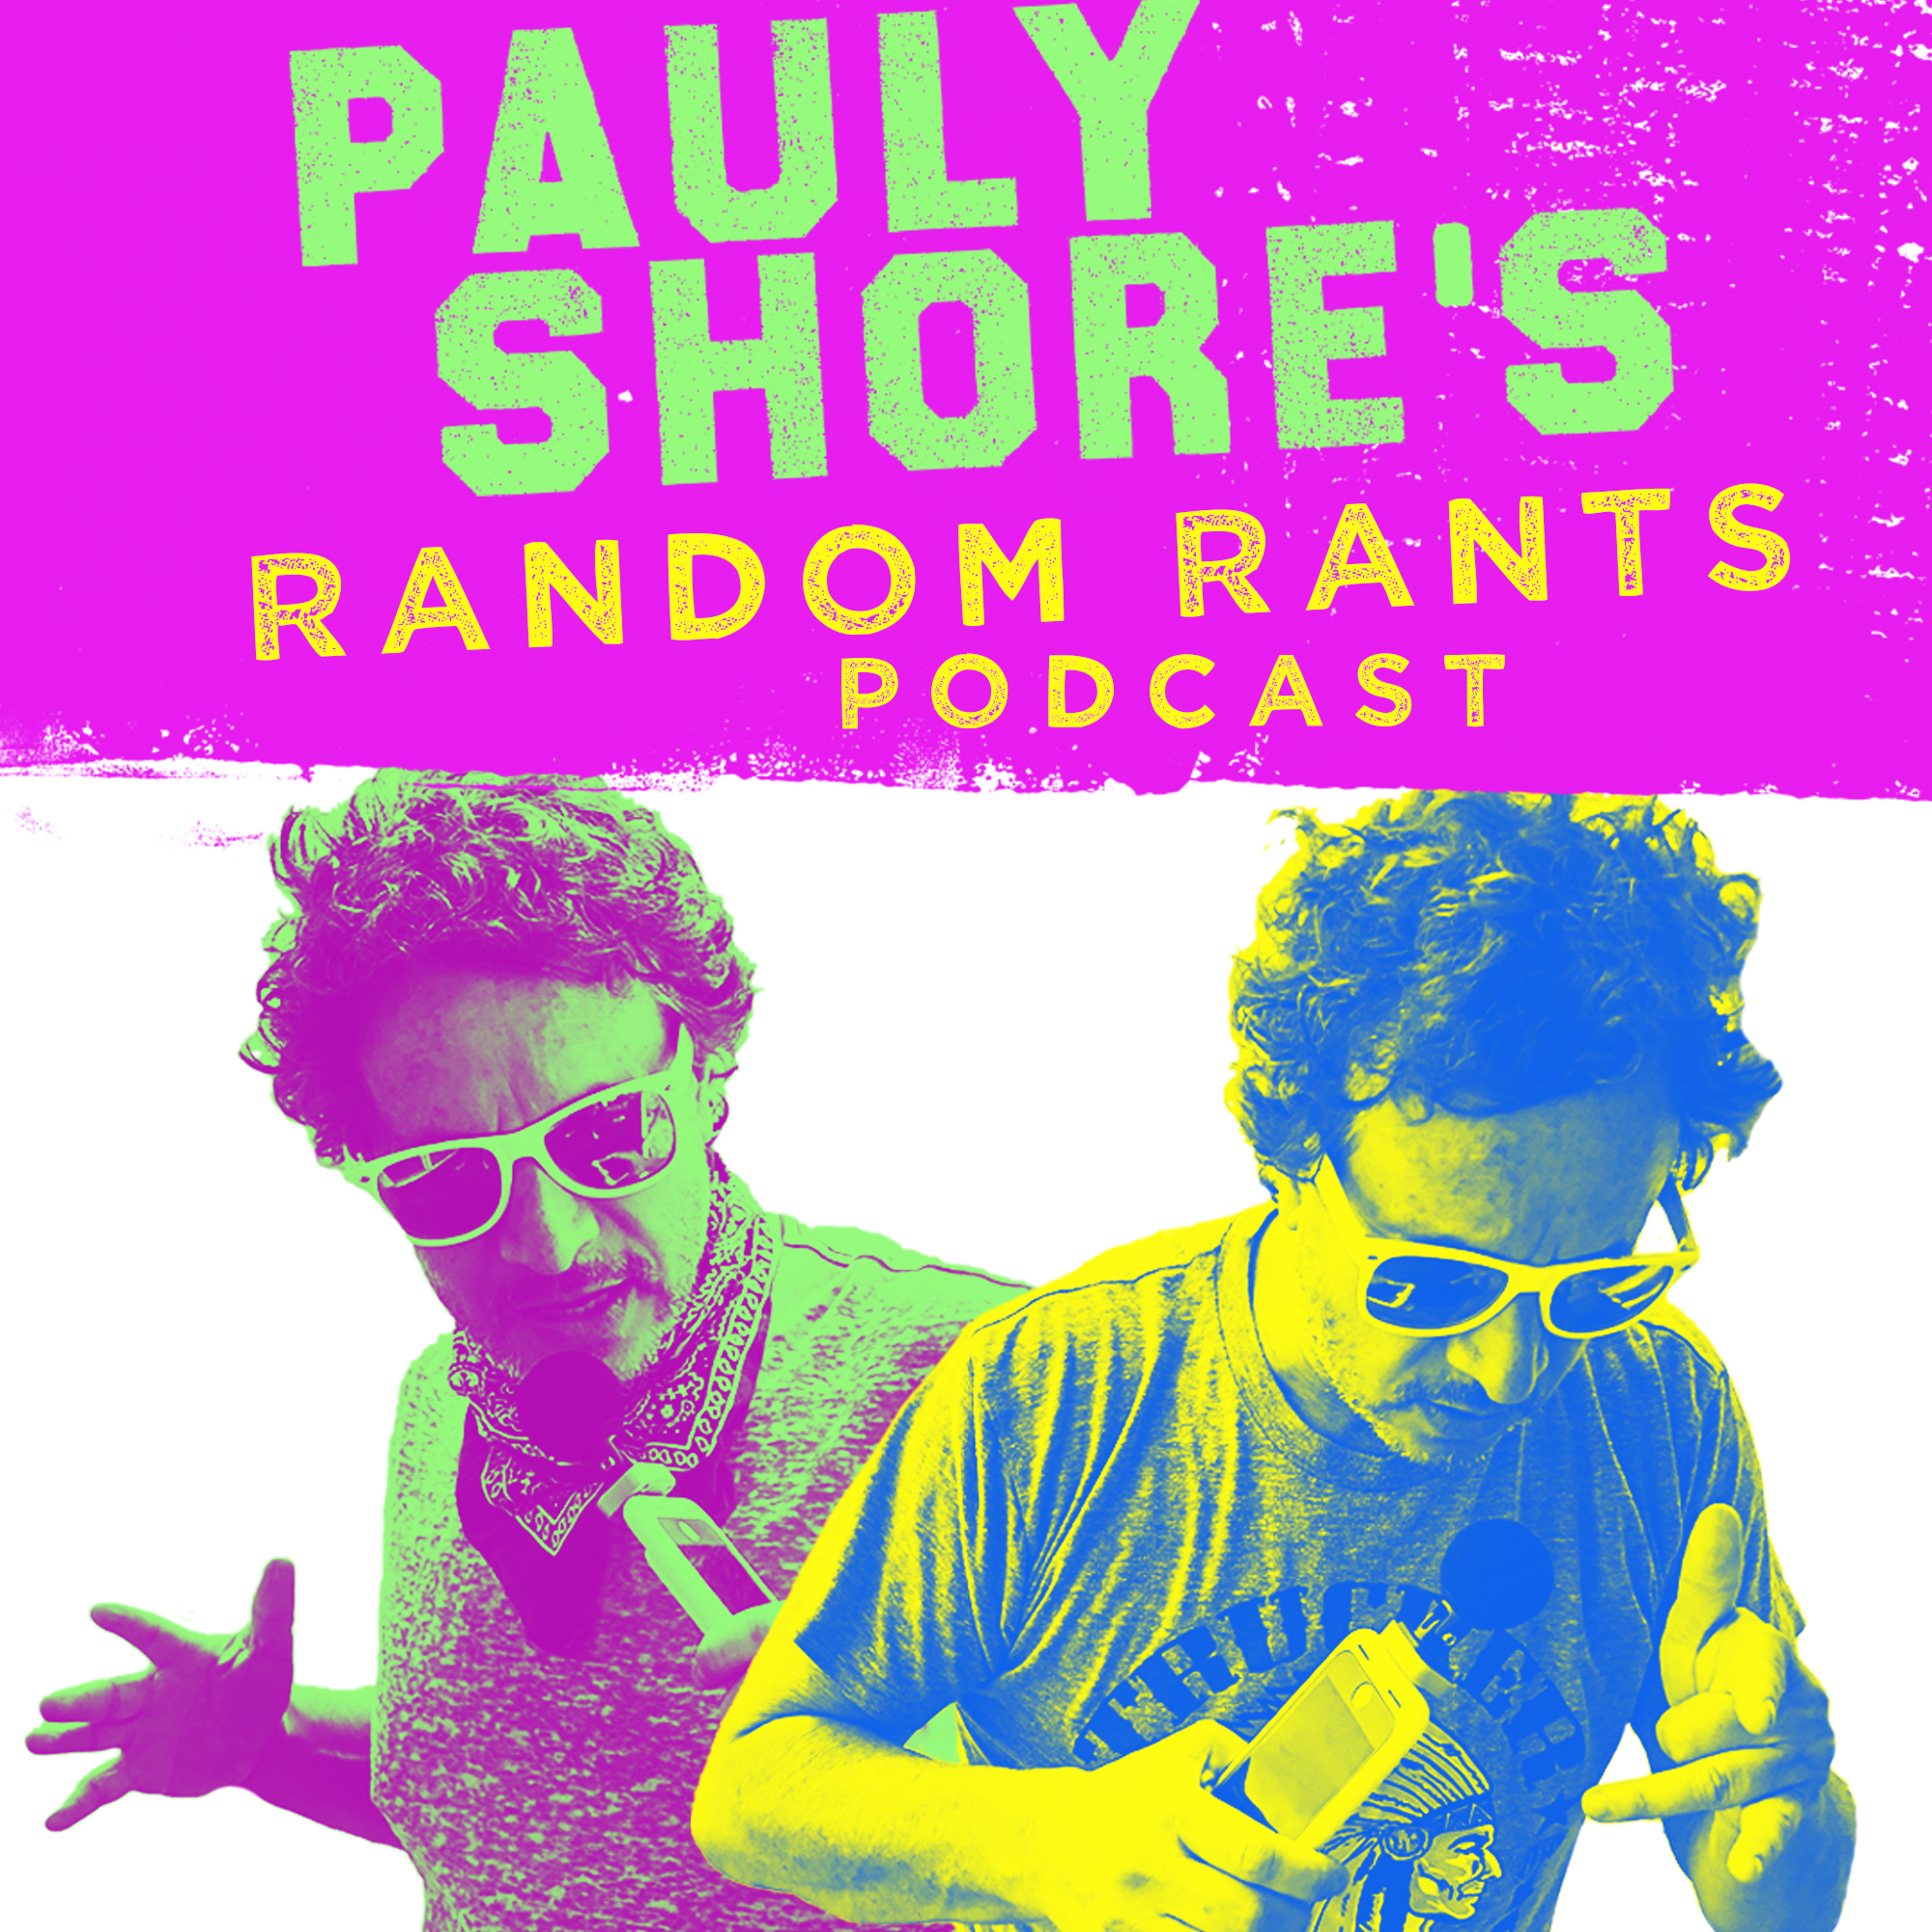 Album Artwork for Pauly Shore's Random Rants